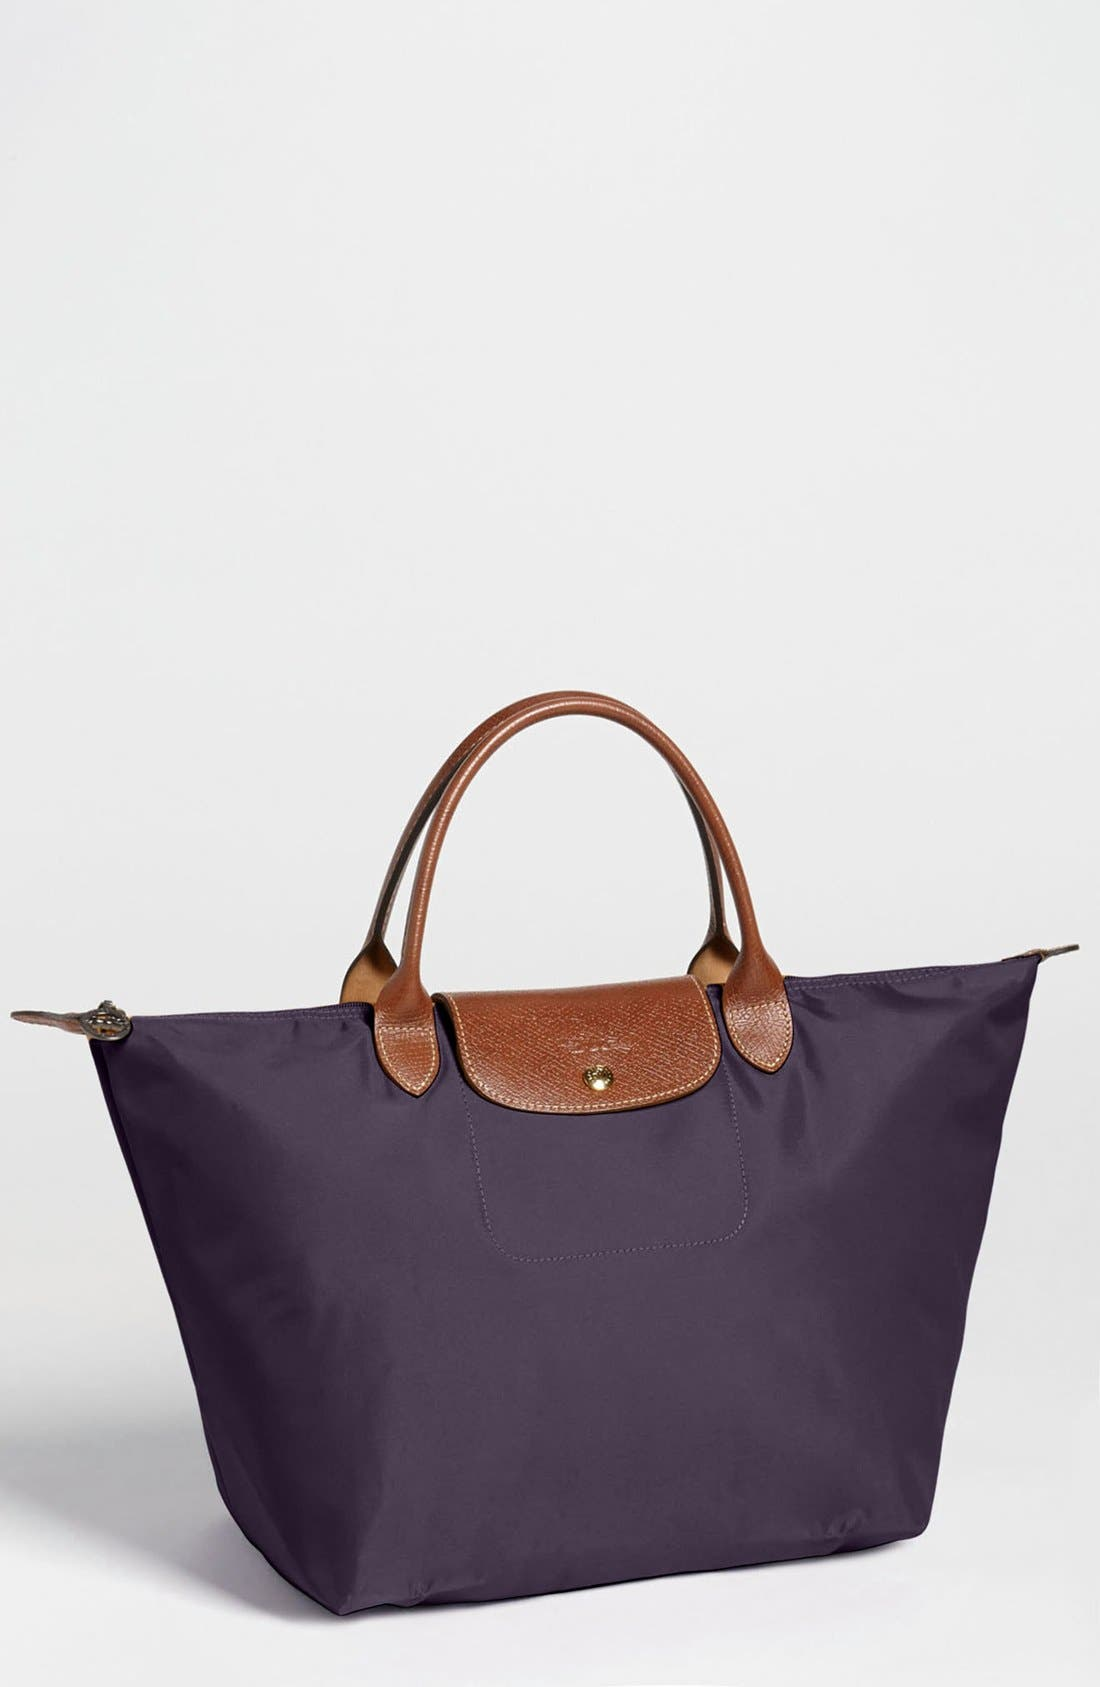 Longchamp 'Medium Le Pliage' Nylon Tote